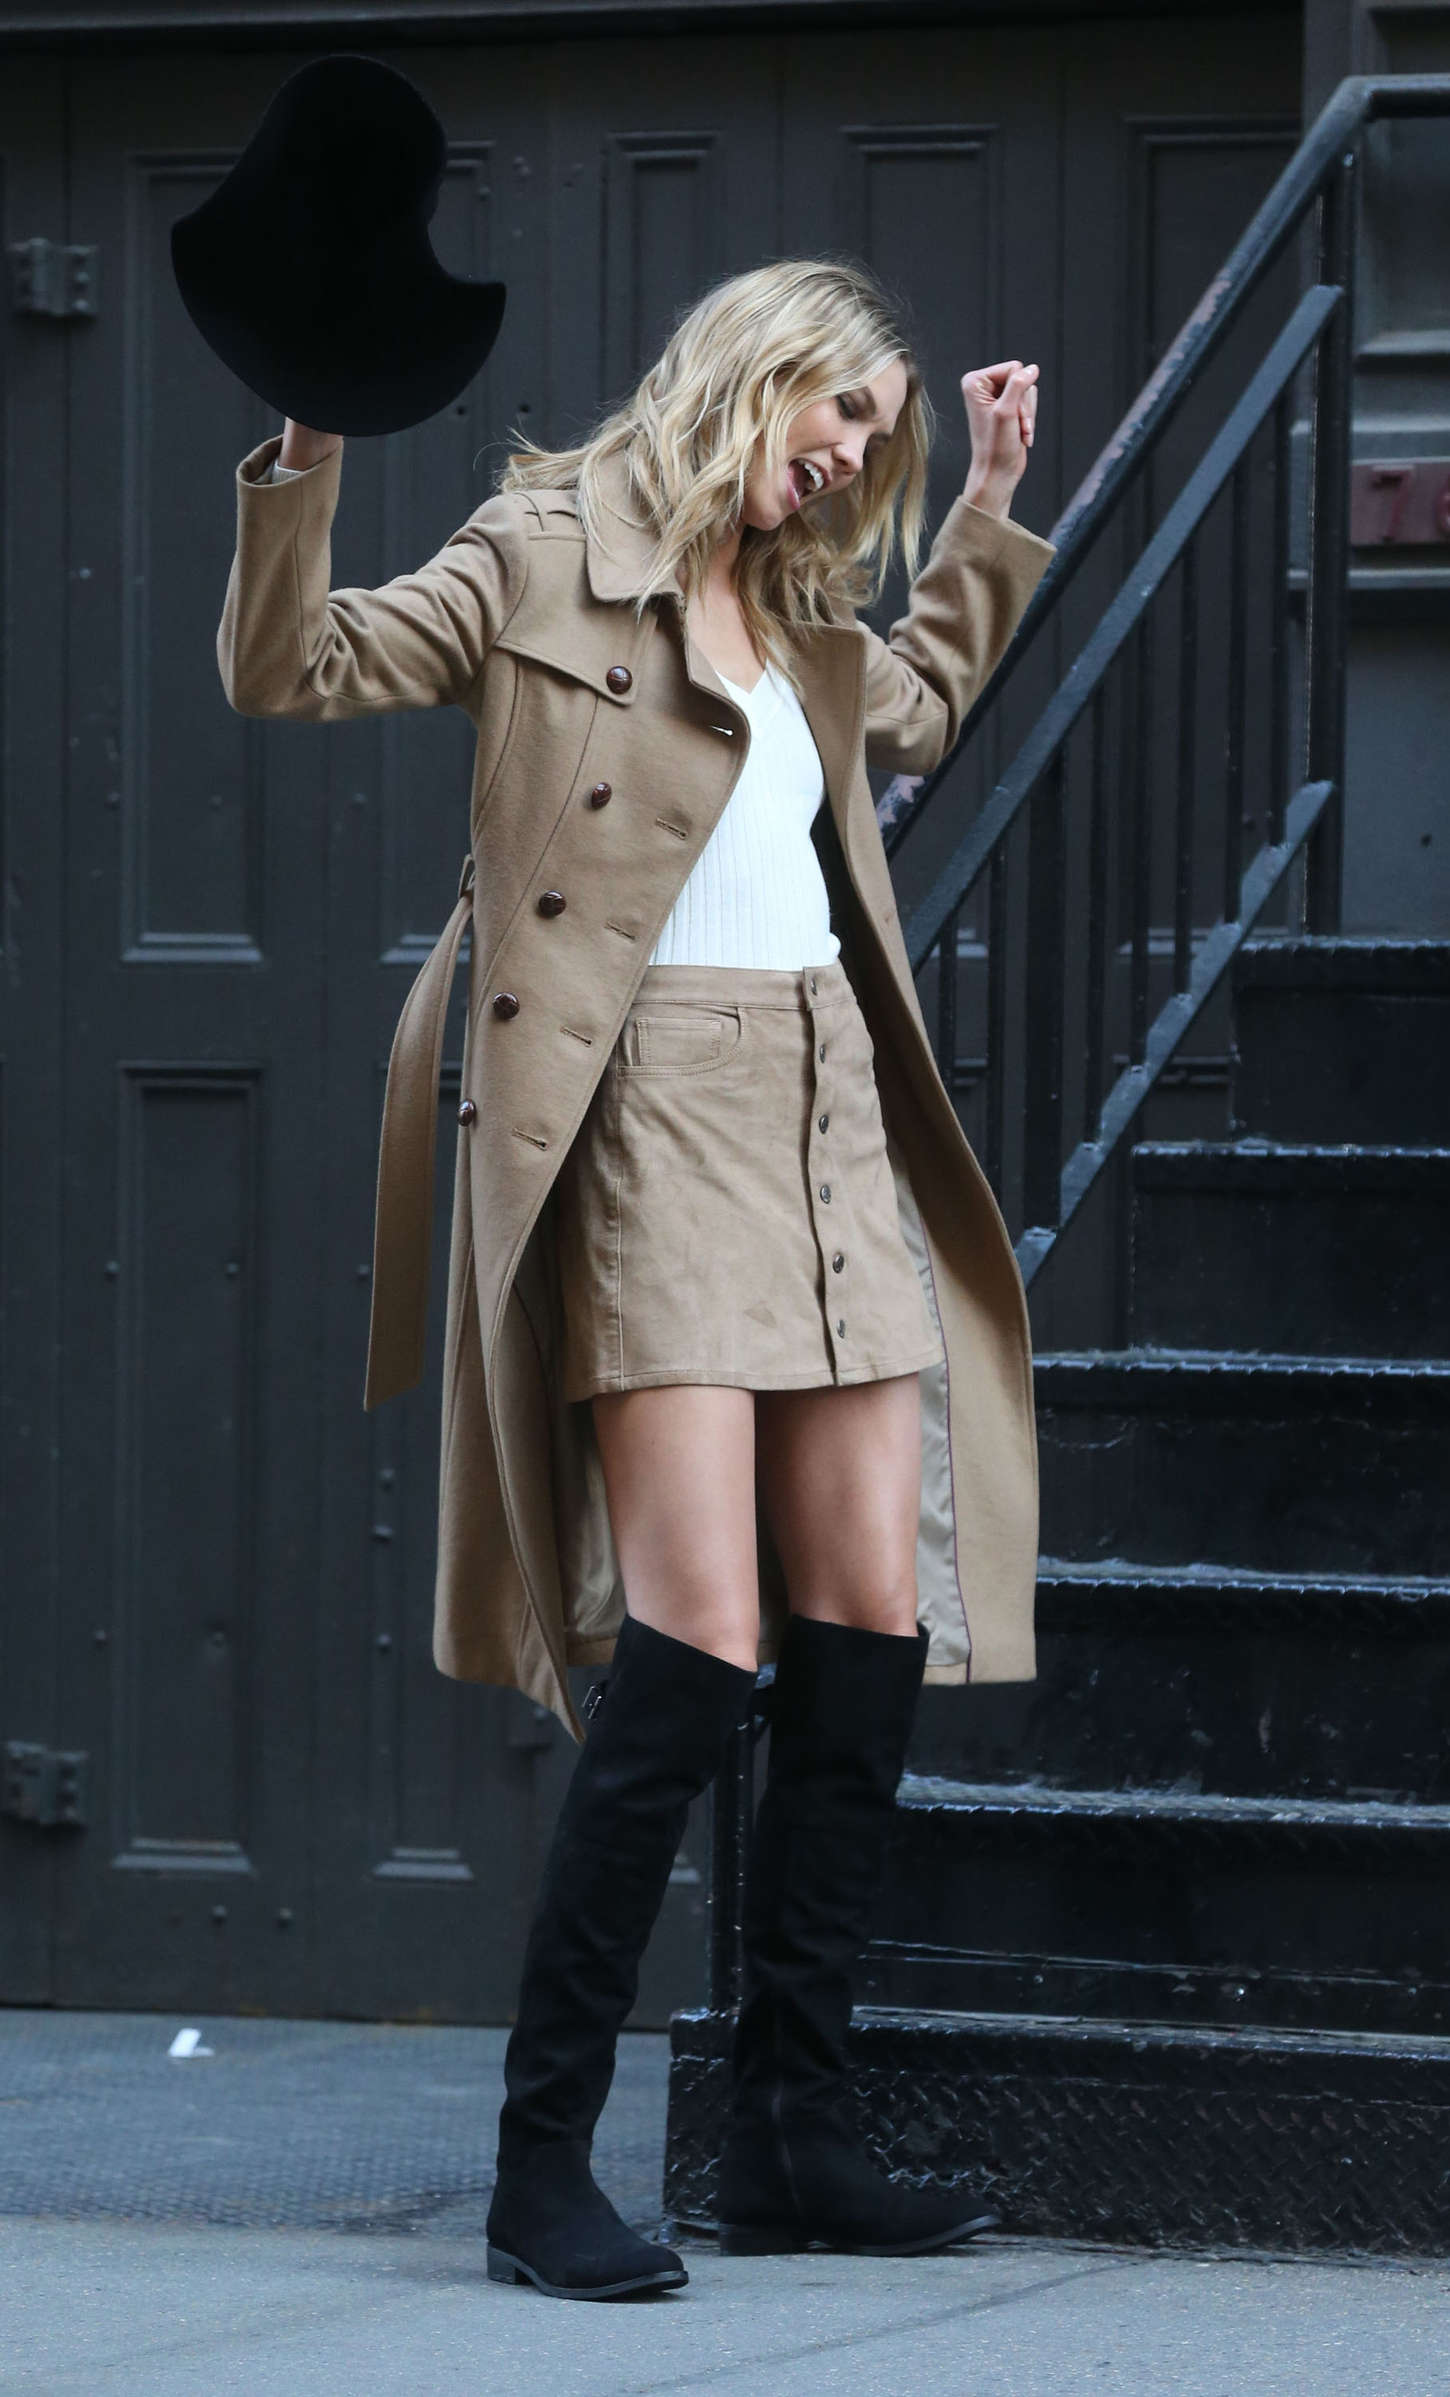 Karlie Kloss 2015 : Karlie Kloss: Photoshoot in NYC -82